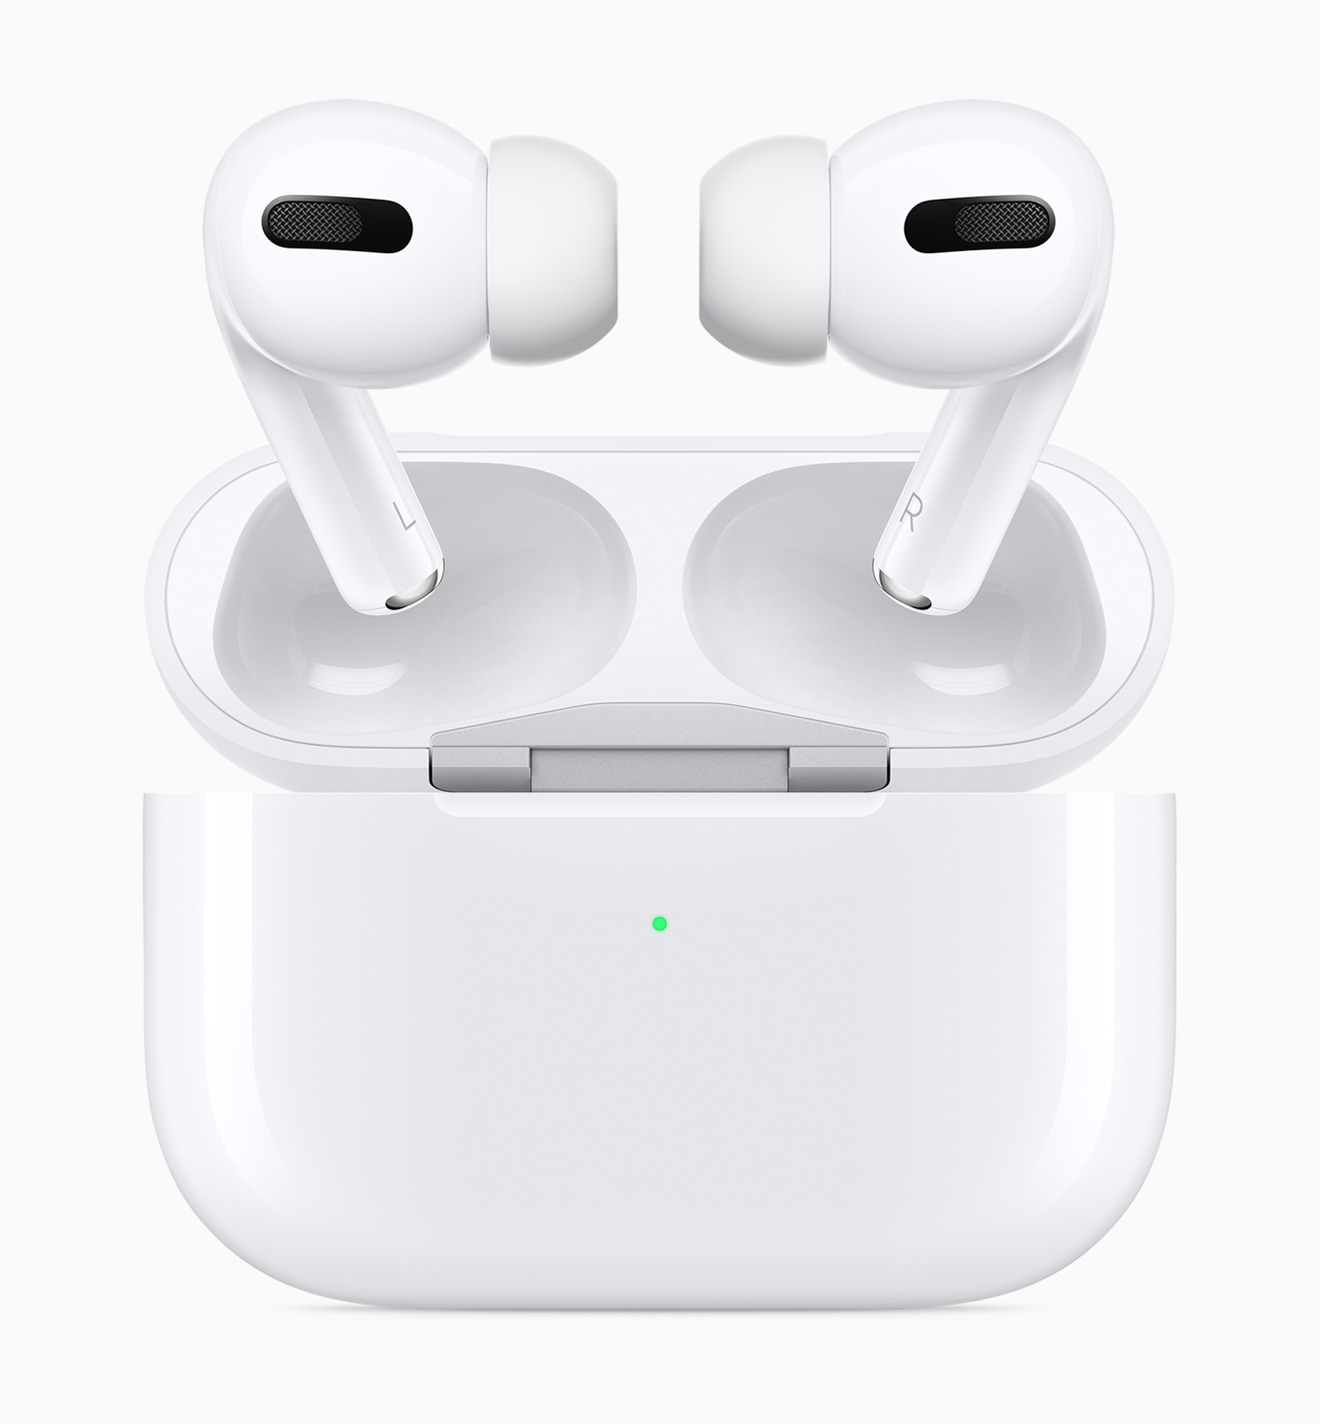 Apple debuts $249 AirPods Pro with active noise cancellation